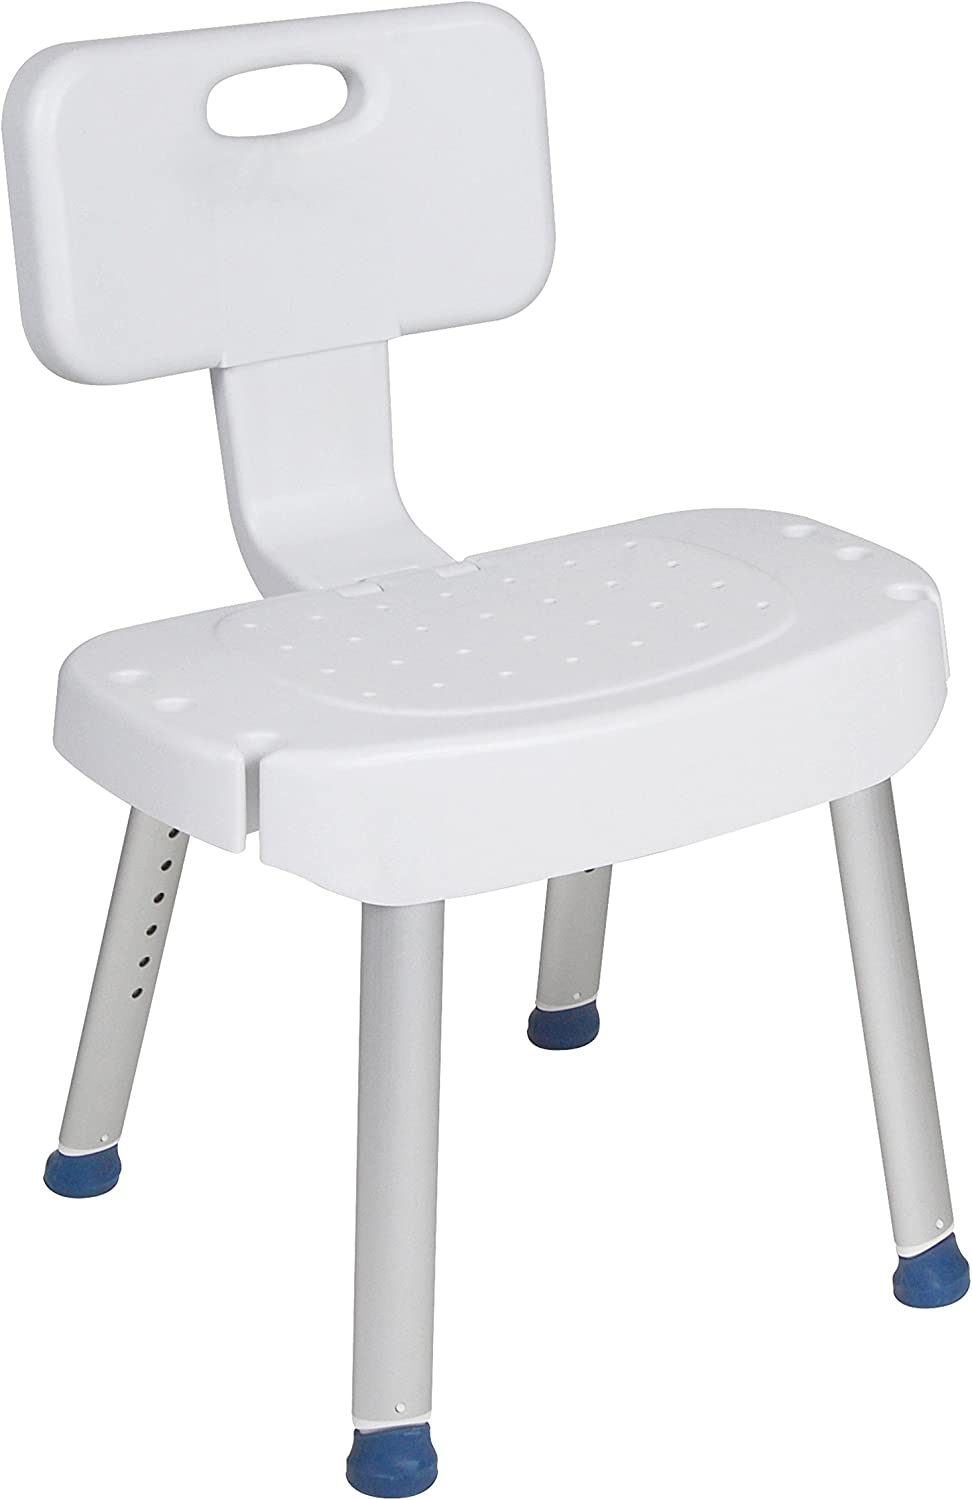 Drive Medical Bathroom Safety Shower Chair with Folding Back, White